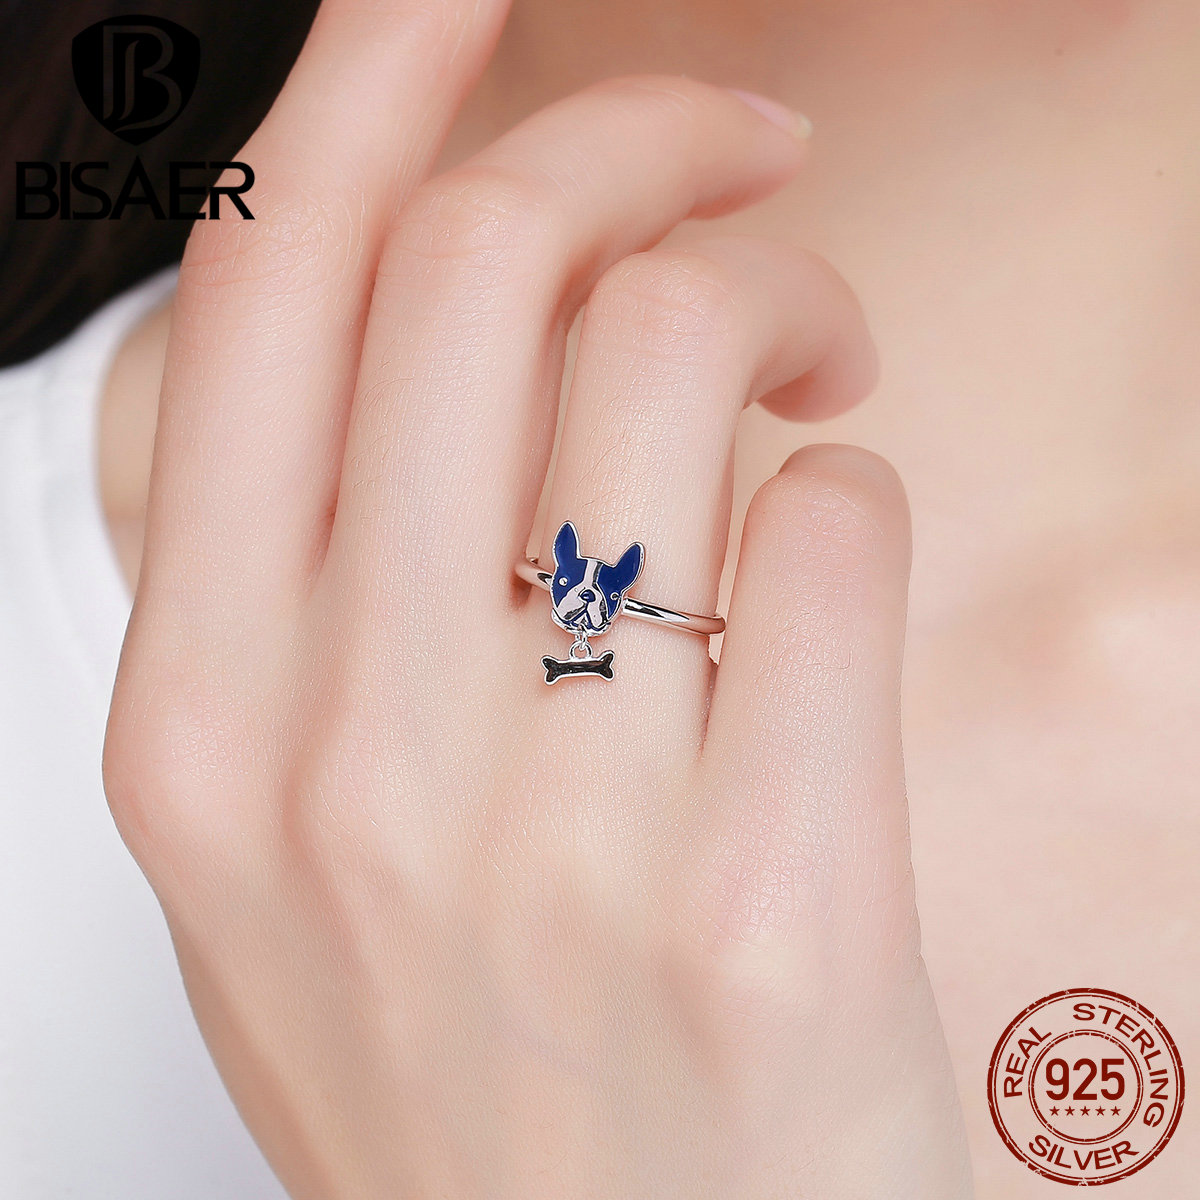 Buy french ring dog and get free shipping on AliExpress.com